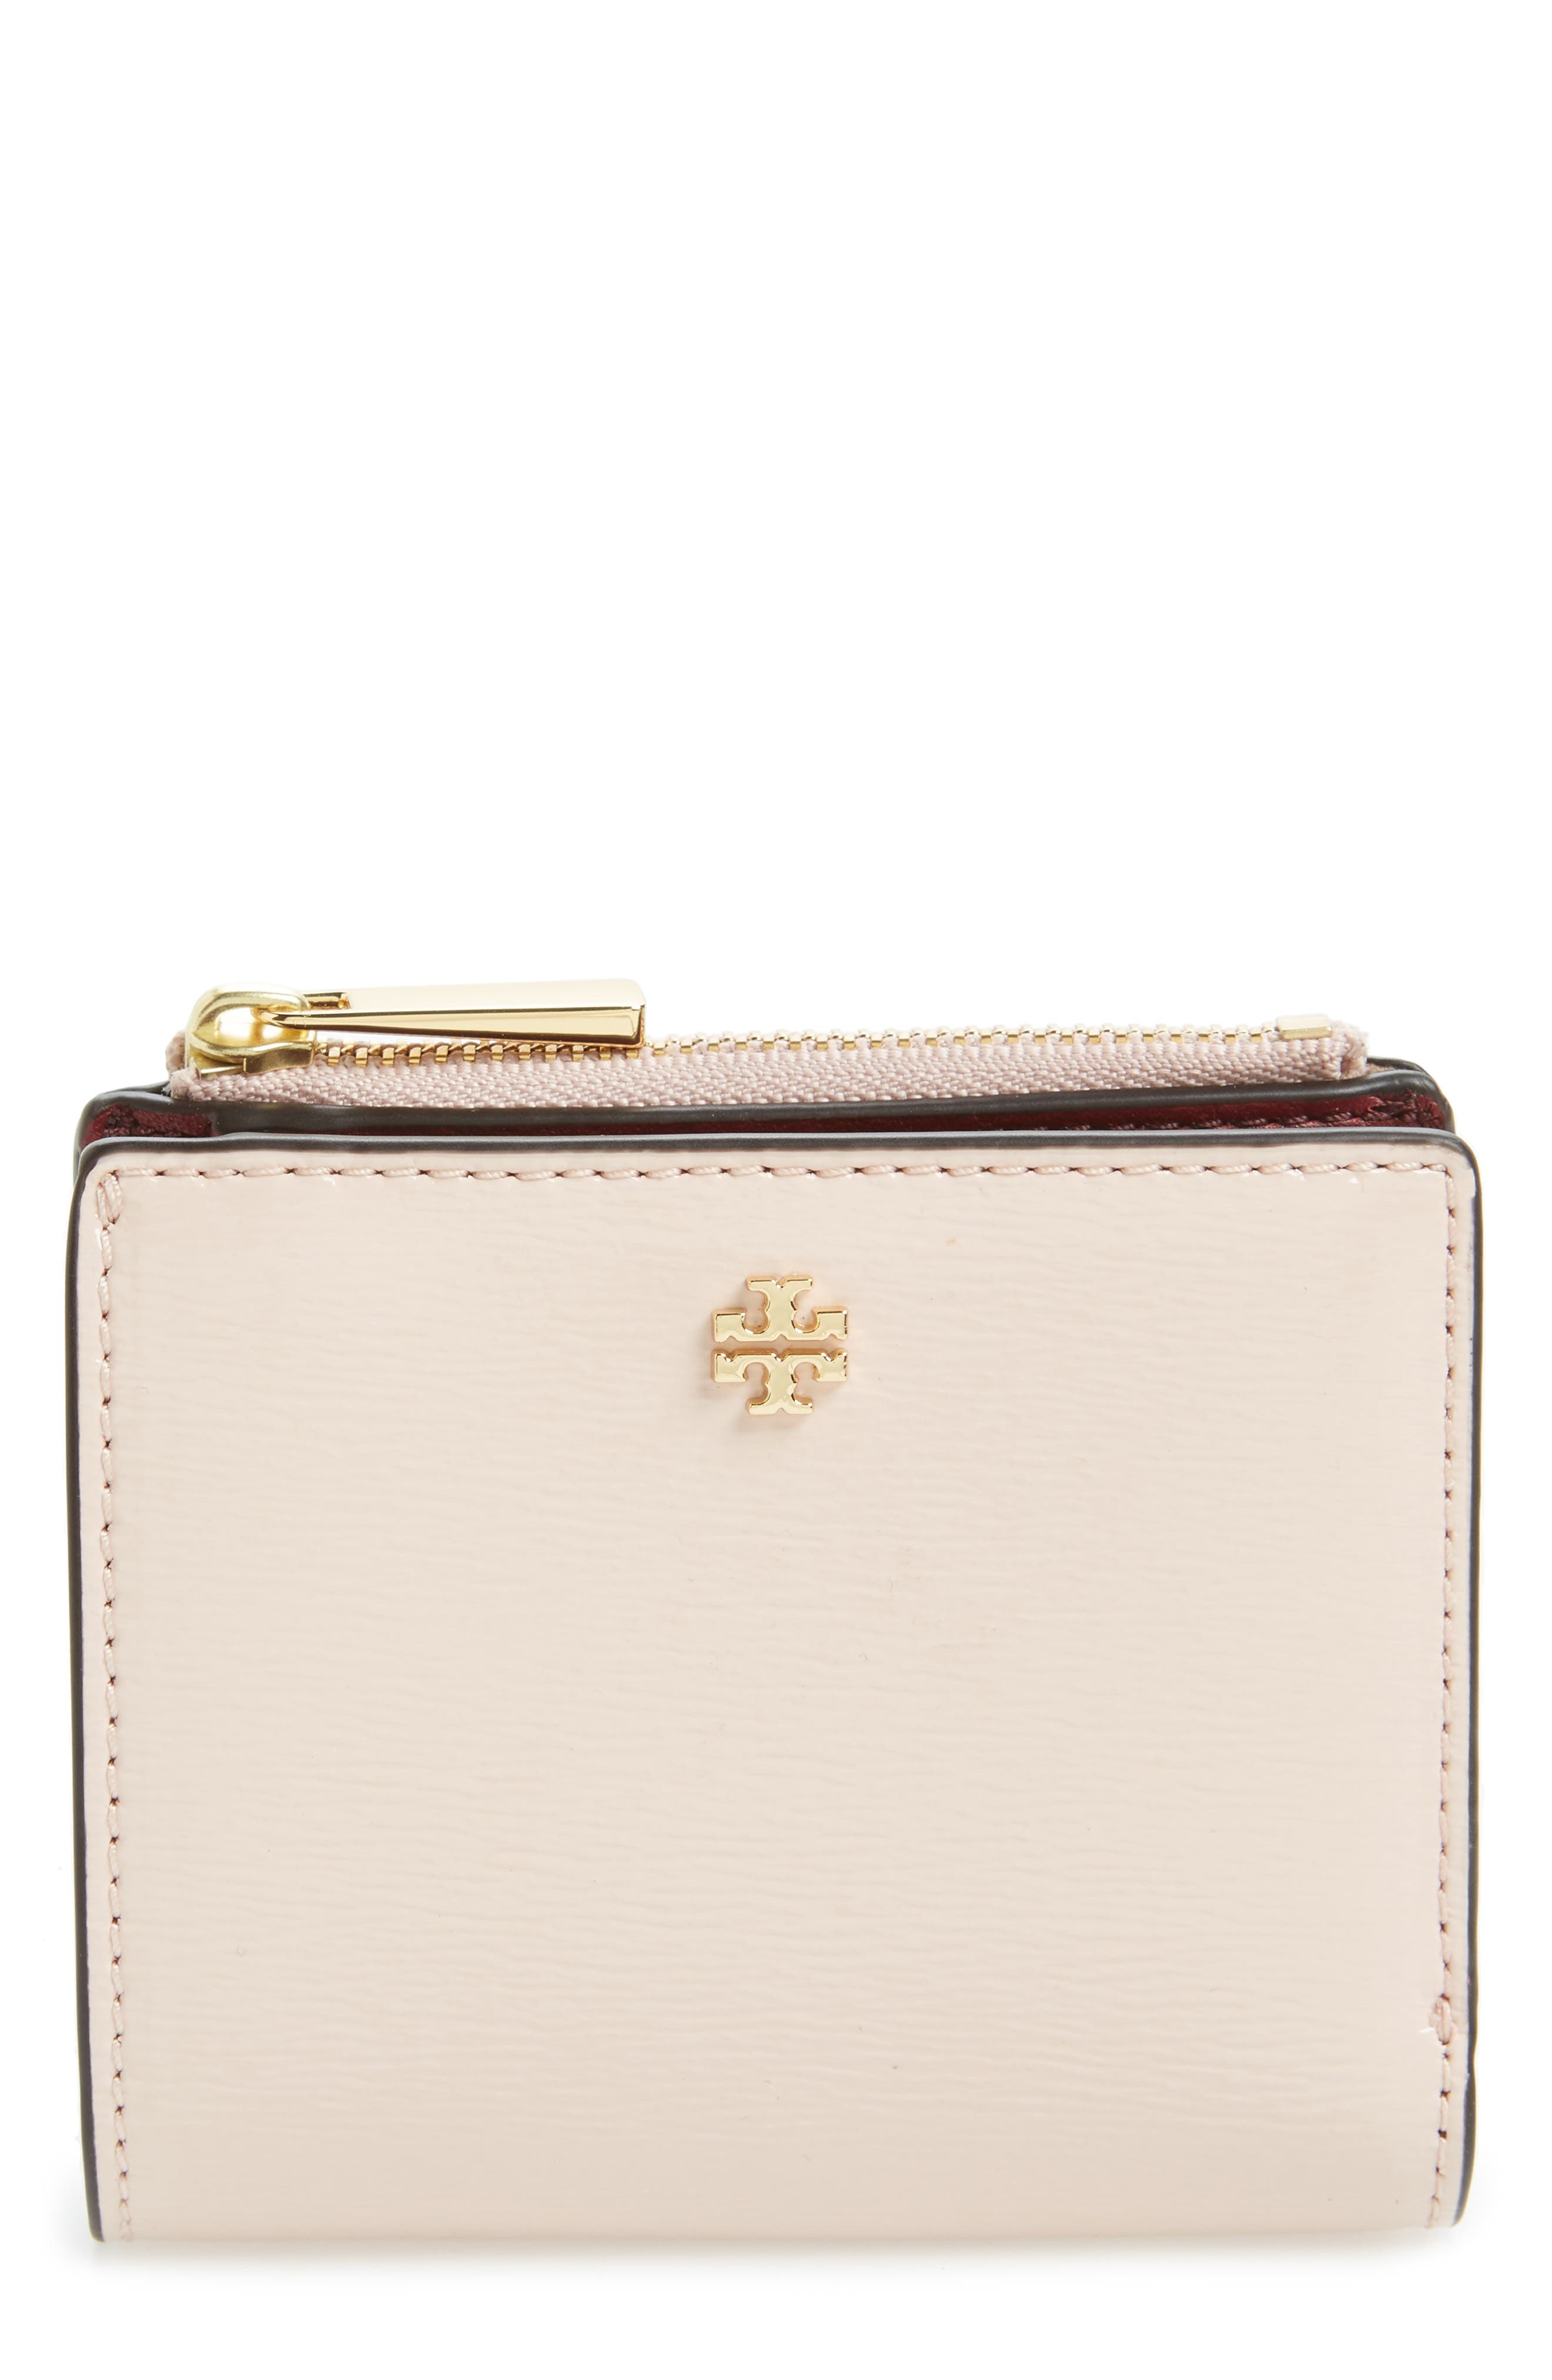 Alternate Image 1 Selected - Tory Burch Mini Robinson Wallet Patent Leather Bifold Wallet